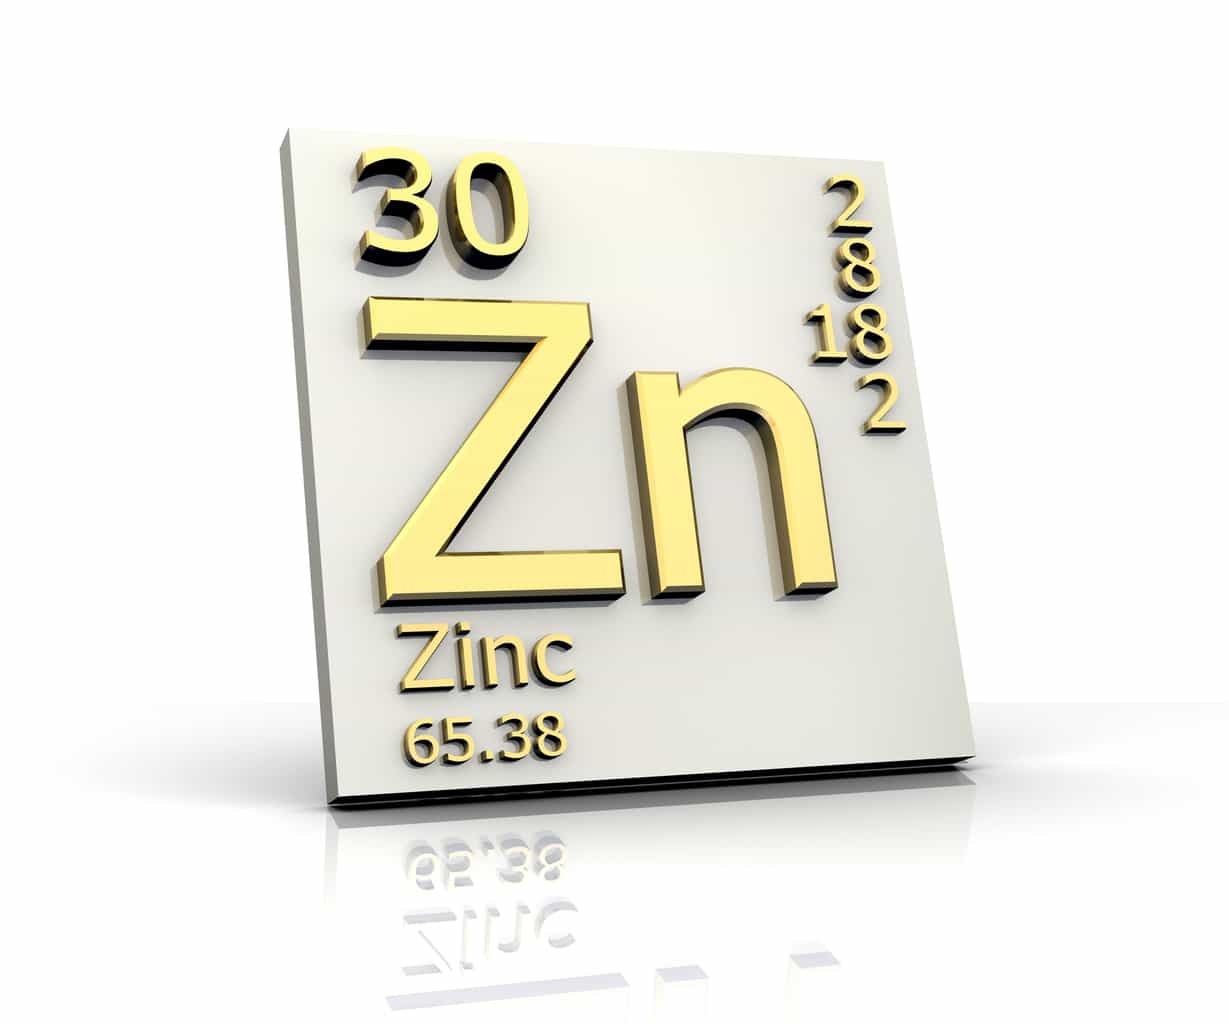 Zinc enhances male sexual function